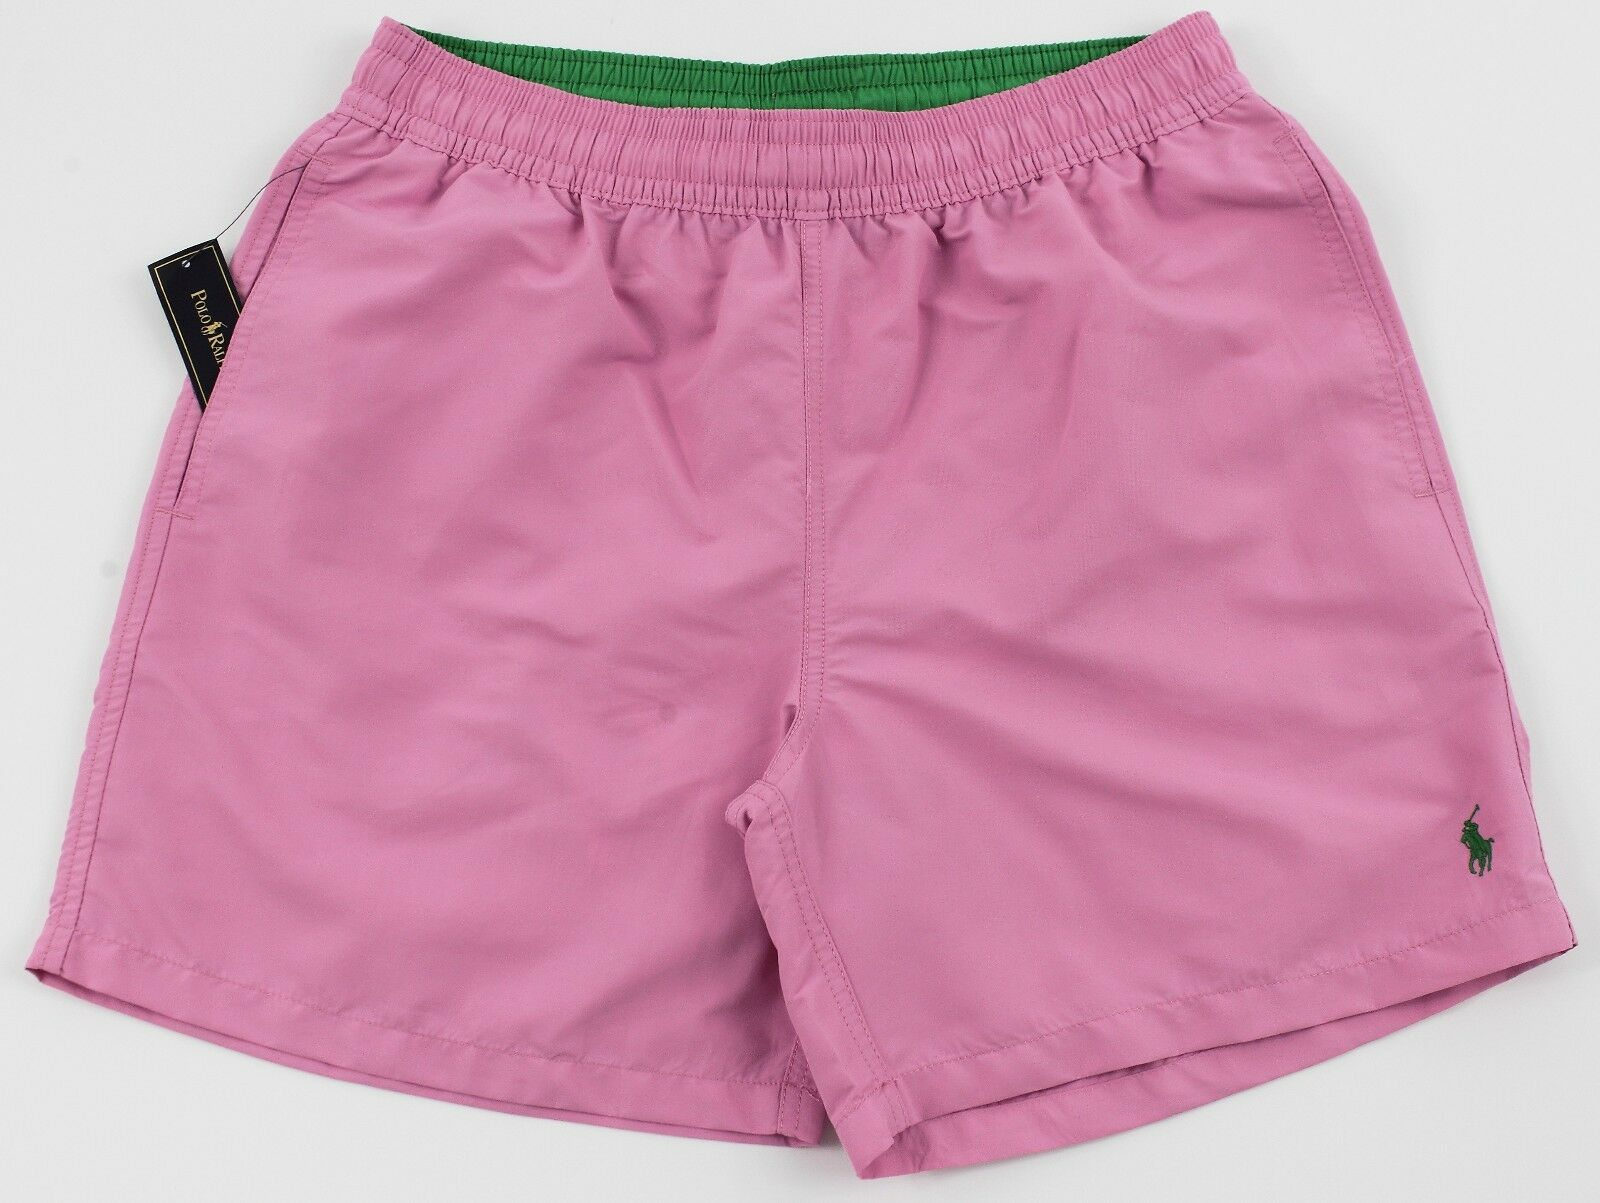 Men's POLO RALPH LAUREN Pink Swimsuit Trunks Large L NWT NEW 4103156 Nice